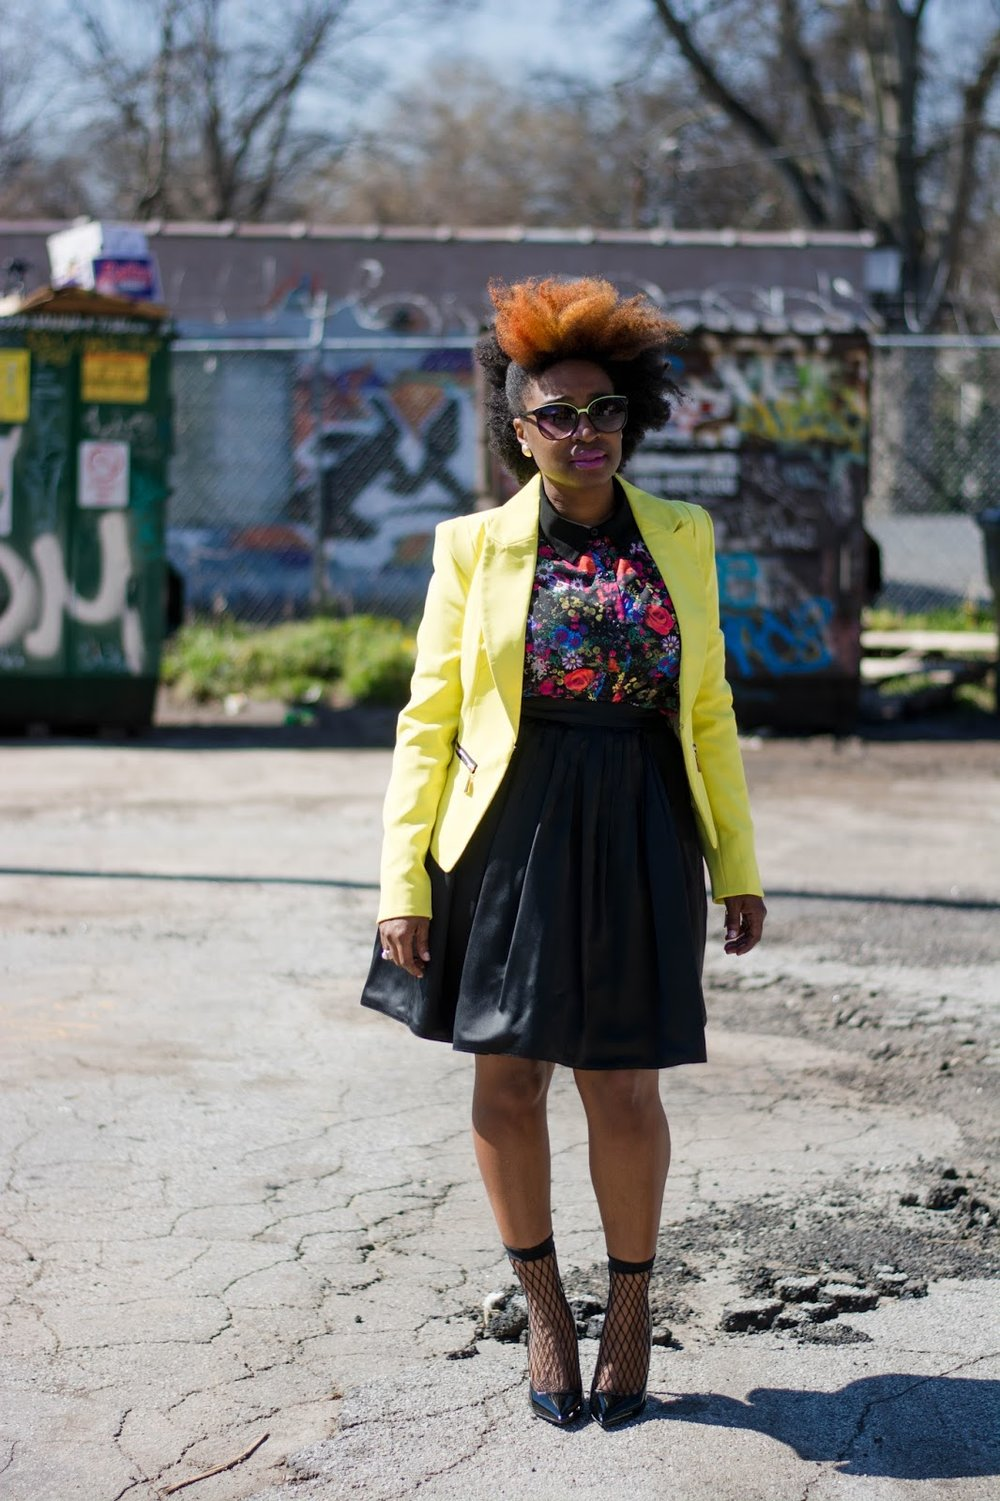 Atlanta style blogger, street style, thrifted fashion, yellow blazer, Target style, ShoeDazzle, Funky Flair Boutique, black skirt, black girls killing it, black blogger, black girls rock, Atlanta stylist, Atlanta wardrobe stylist, black pumps, Natural fashion blogger